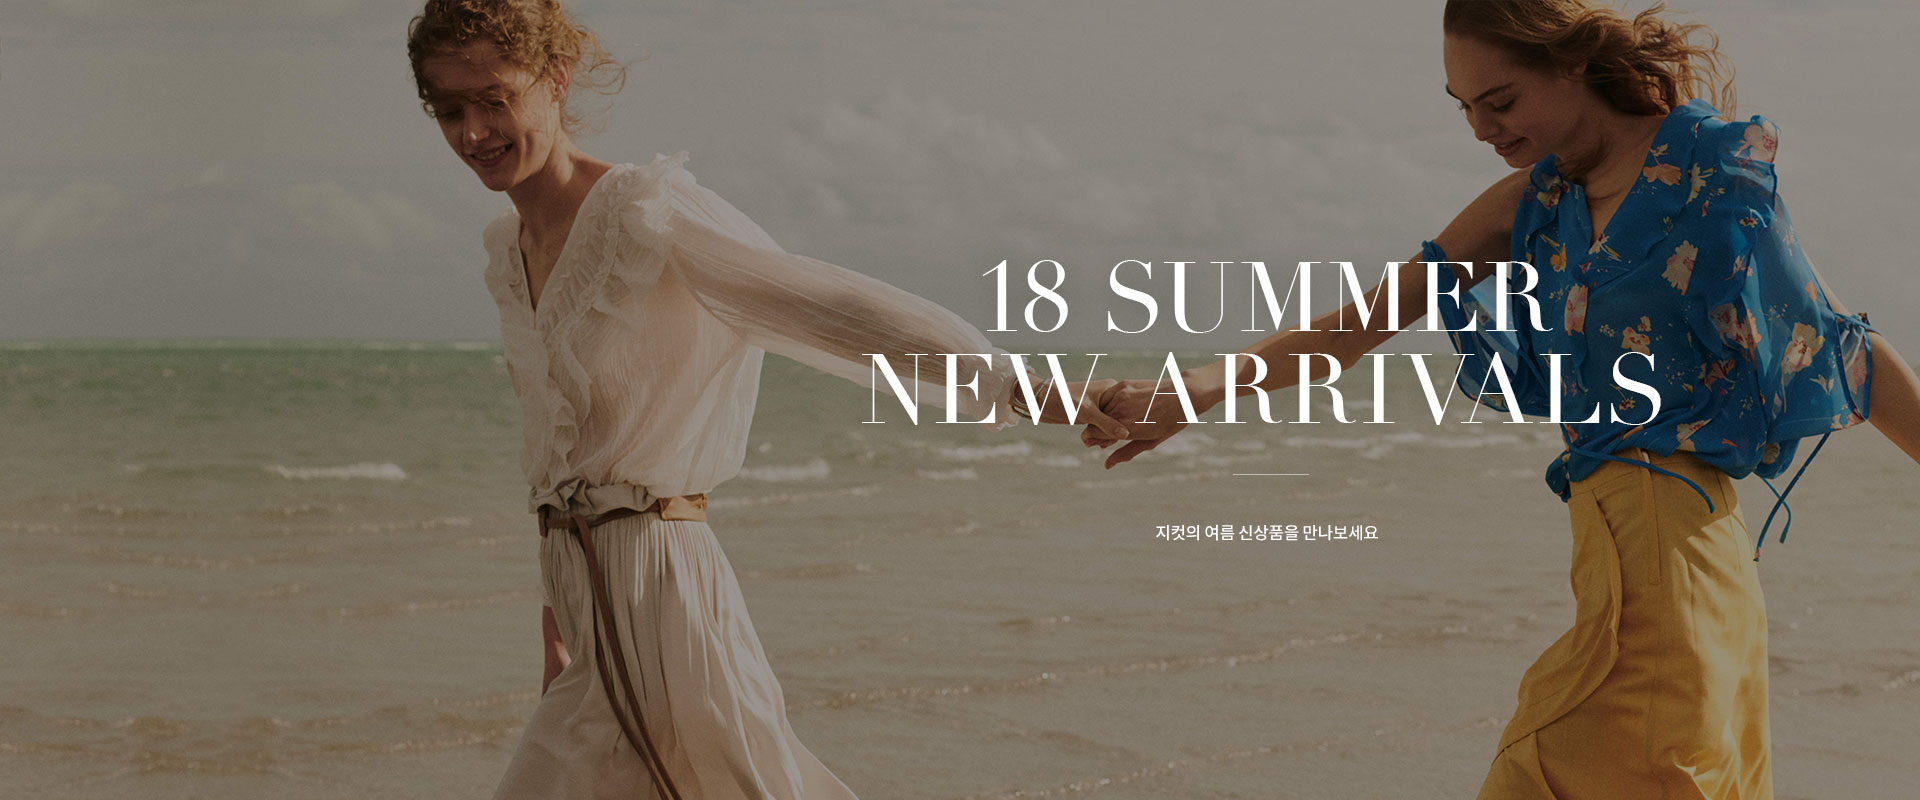 18 summer new in